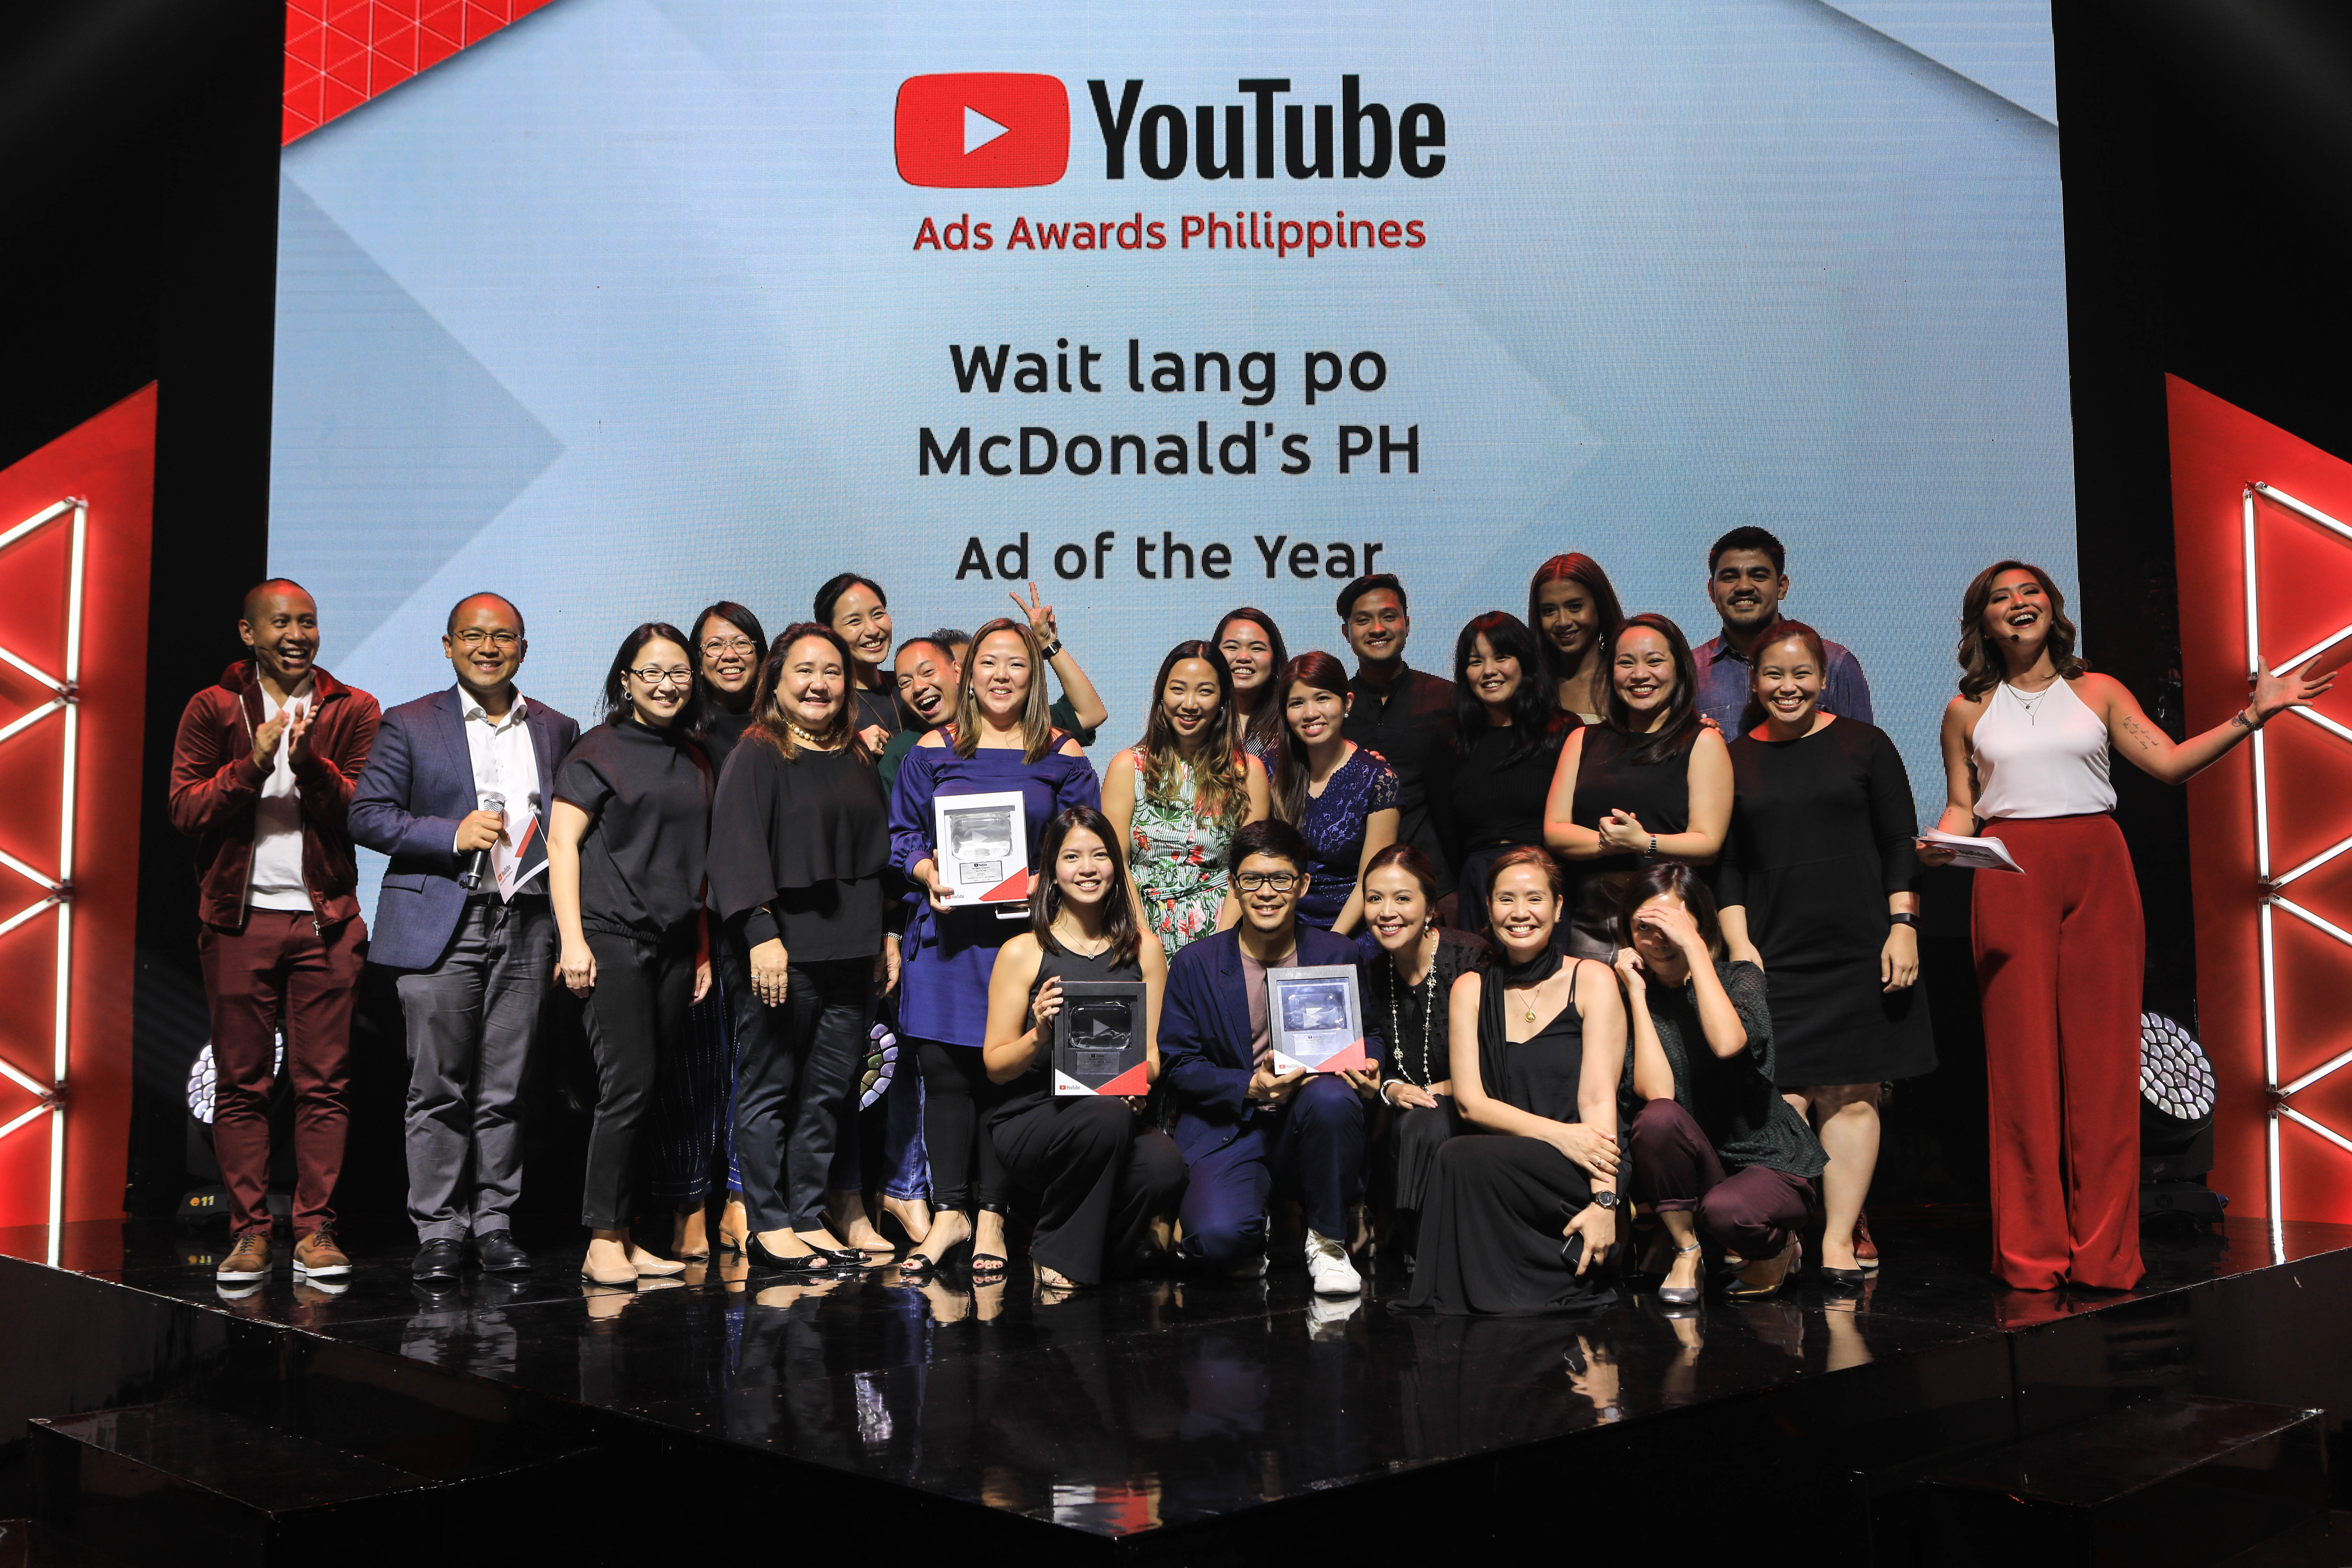 YouTube Ads Awards unveils the best digital videos on the